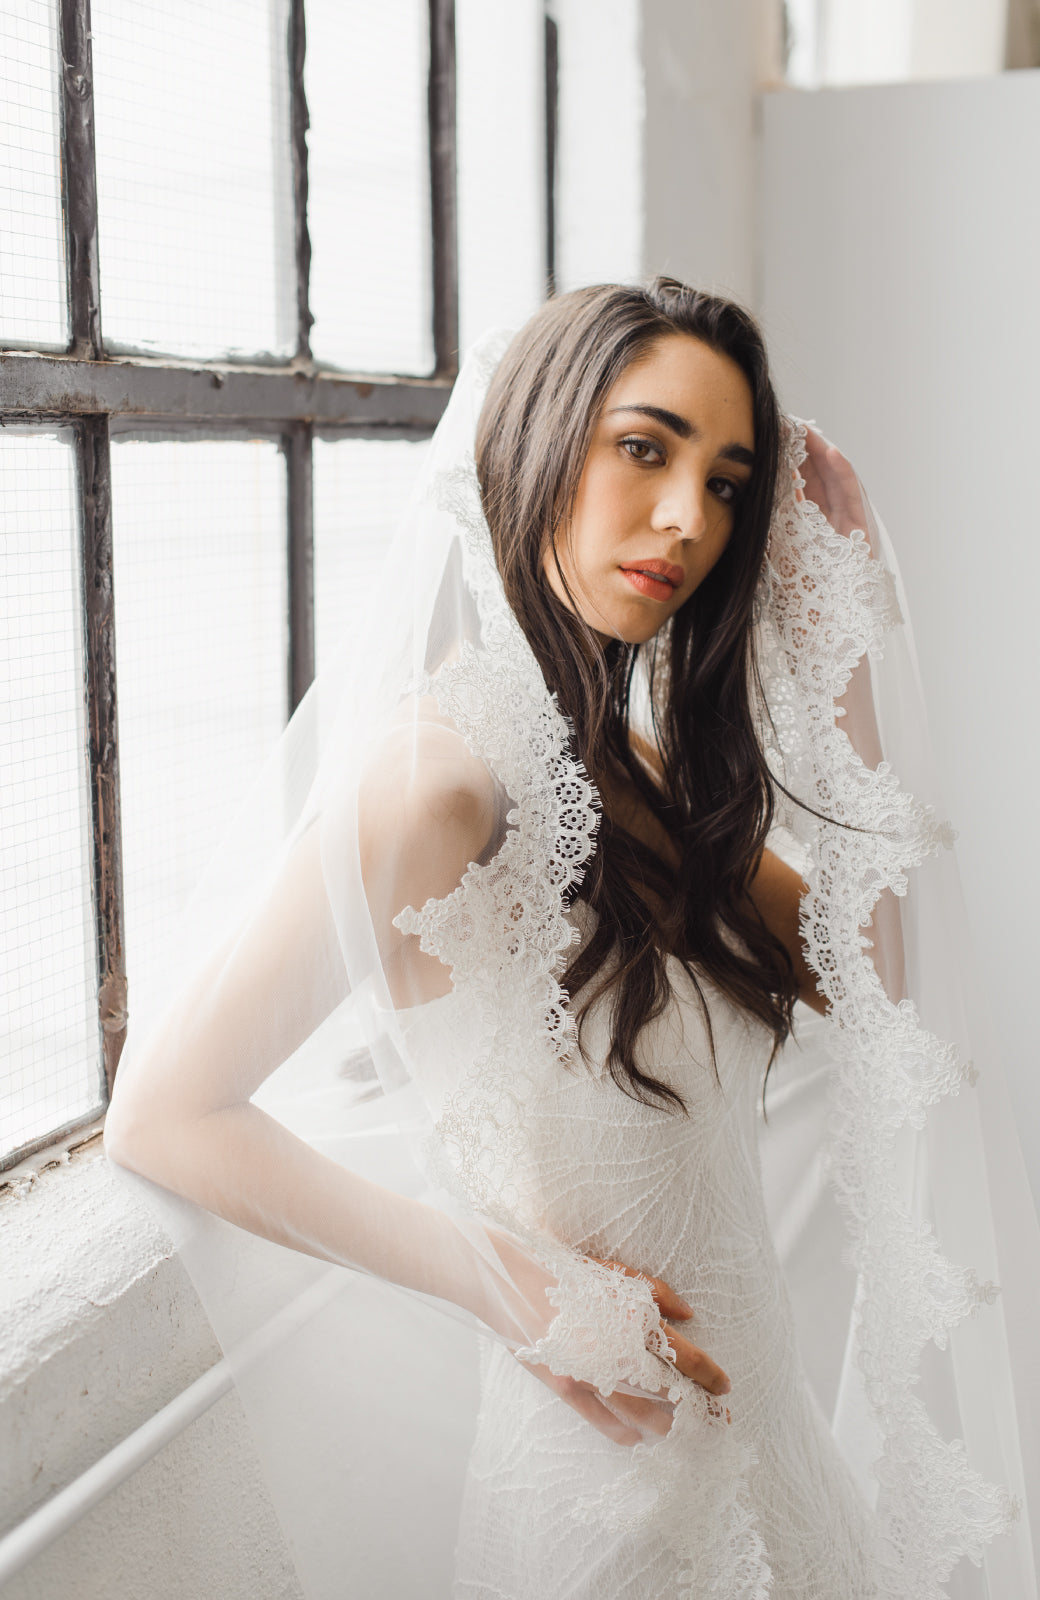 Catarina Lace Wedding Veil - Daphne Newman Design